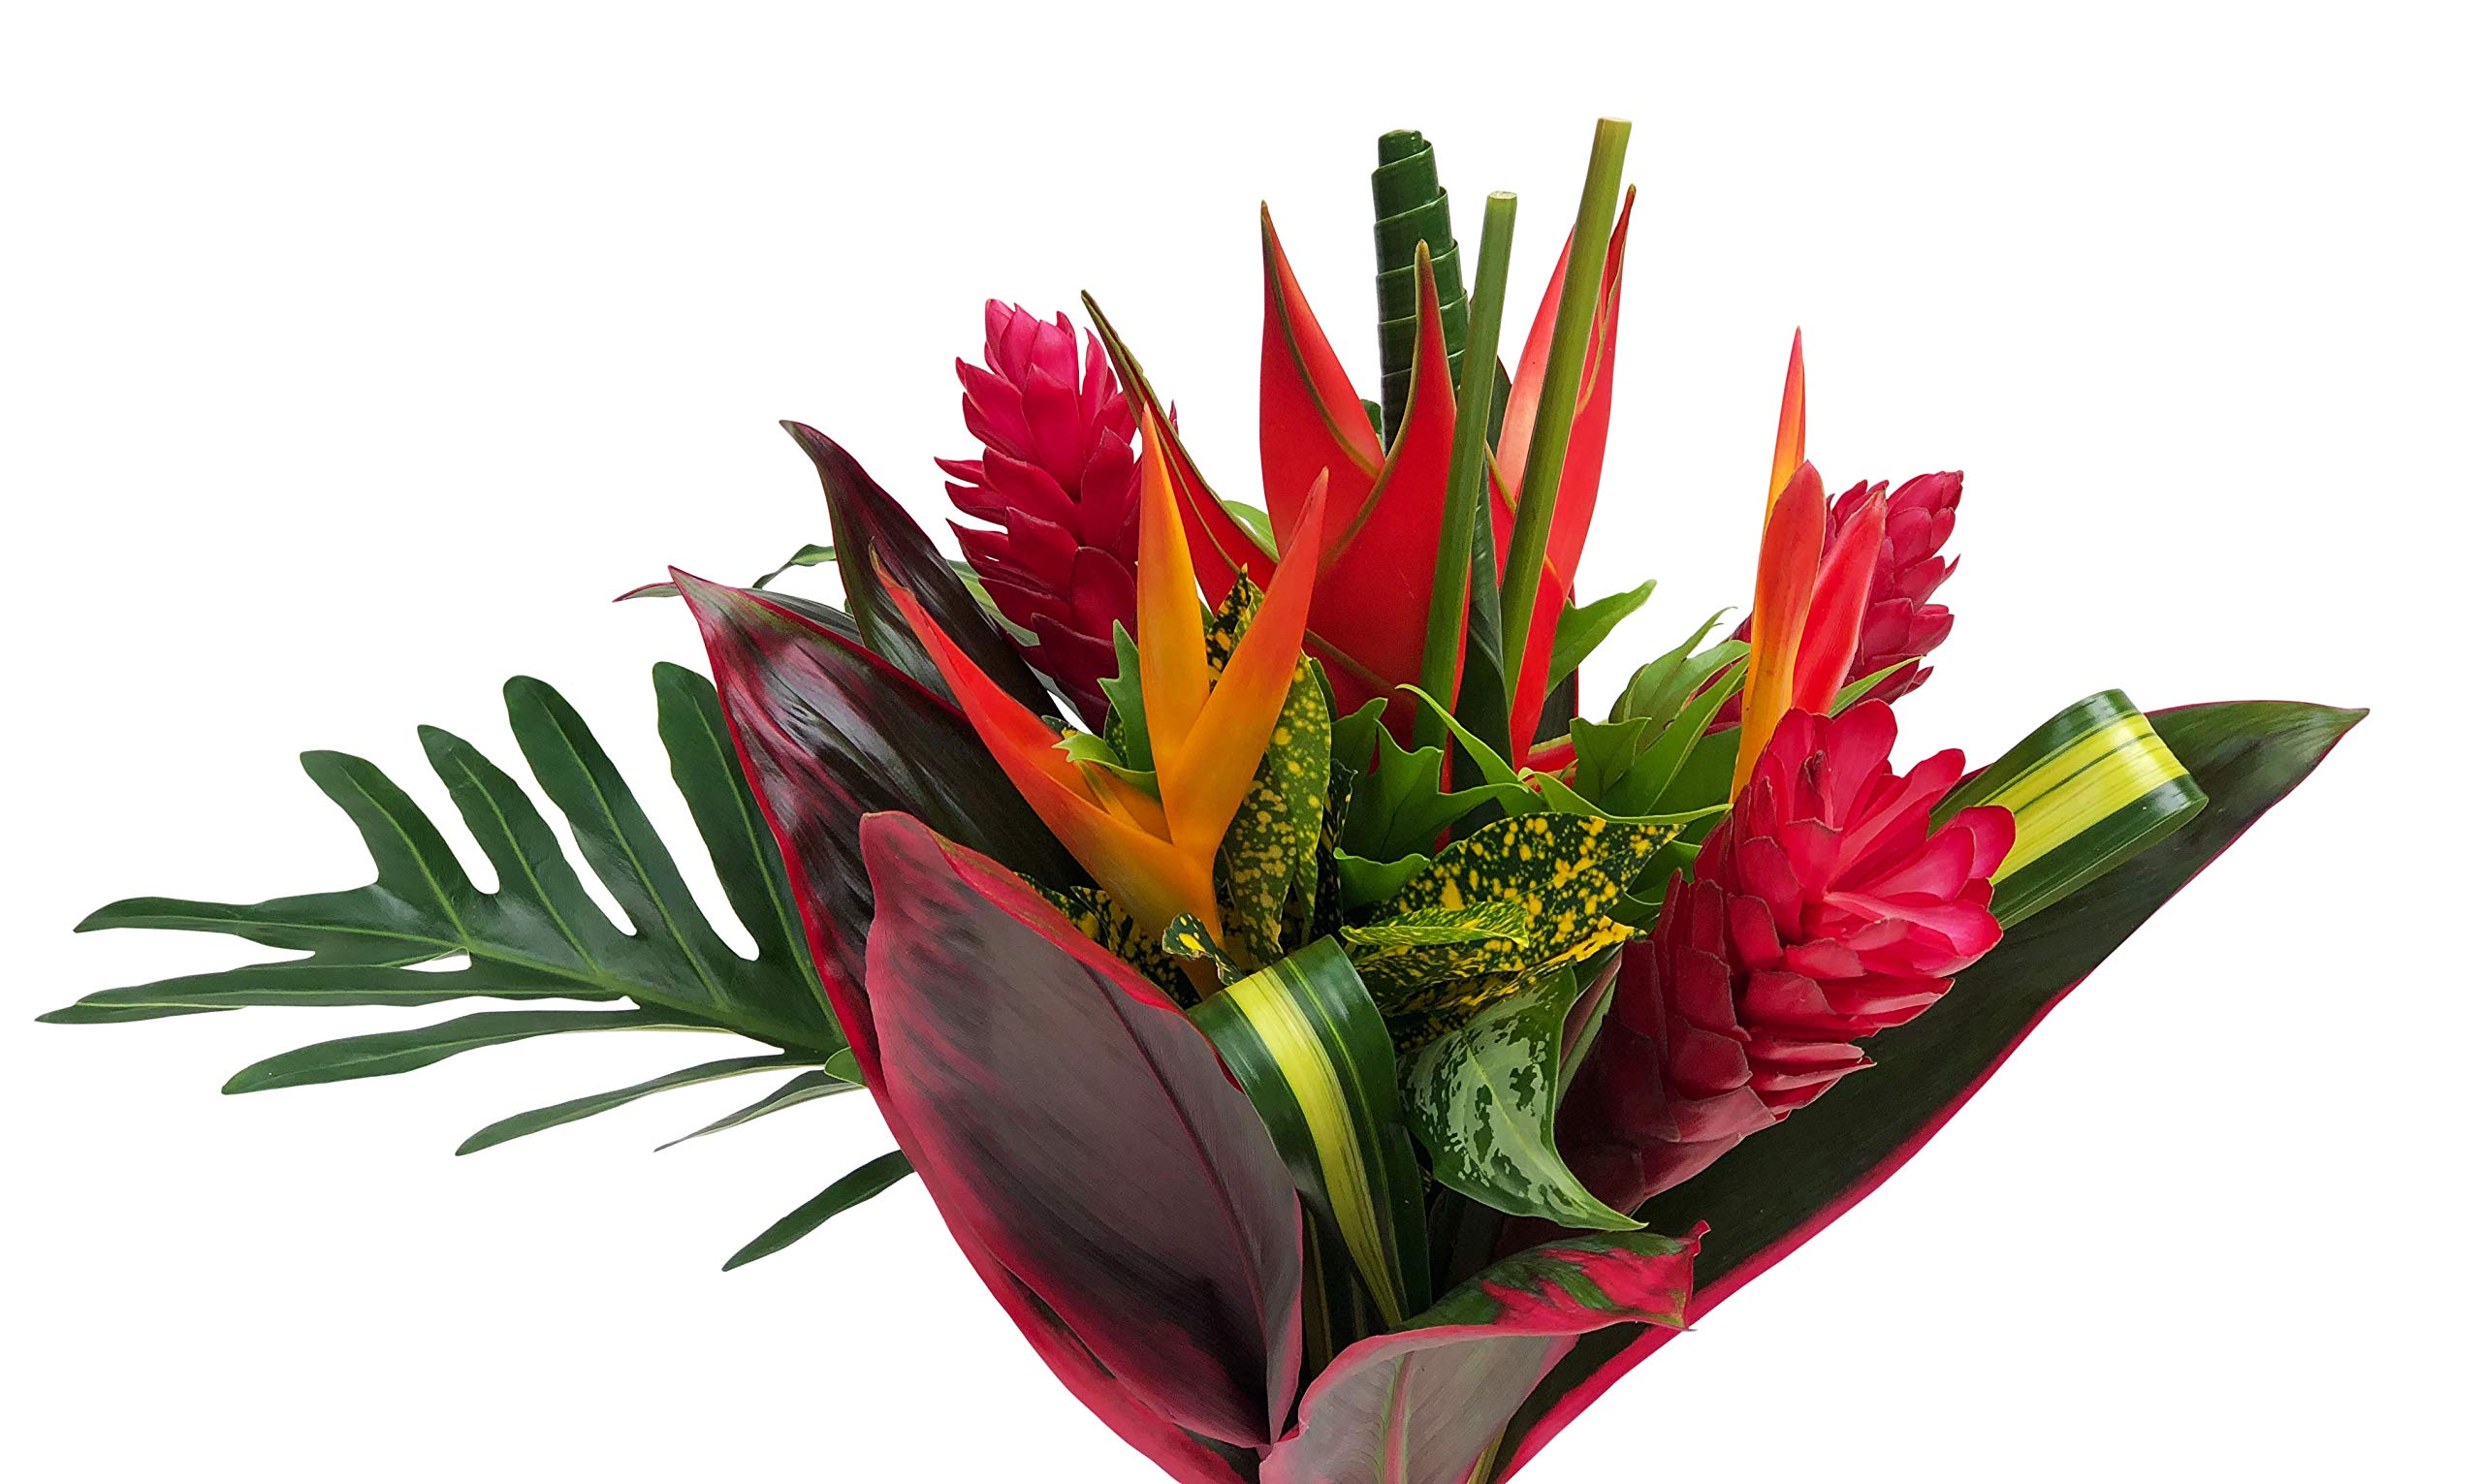 Tropical Bouquet Tropical Treasure with Bright Birds of Paradise, Pink Ginger, and Bold Tropical Greenery by BloomsyBox (Image #5)